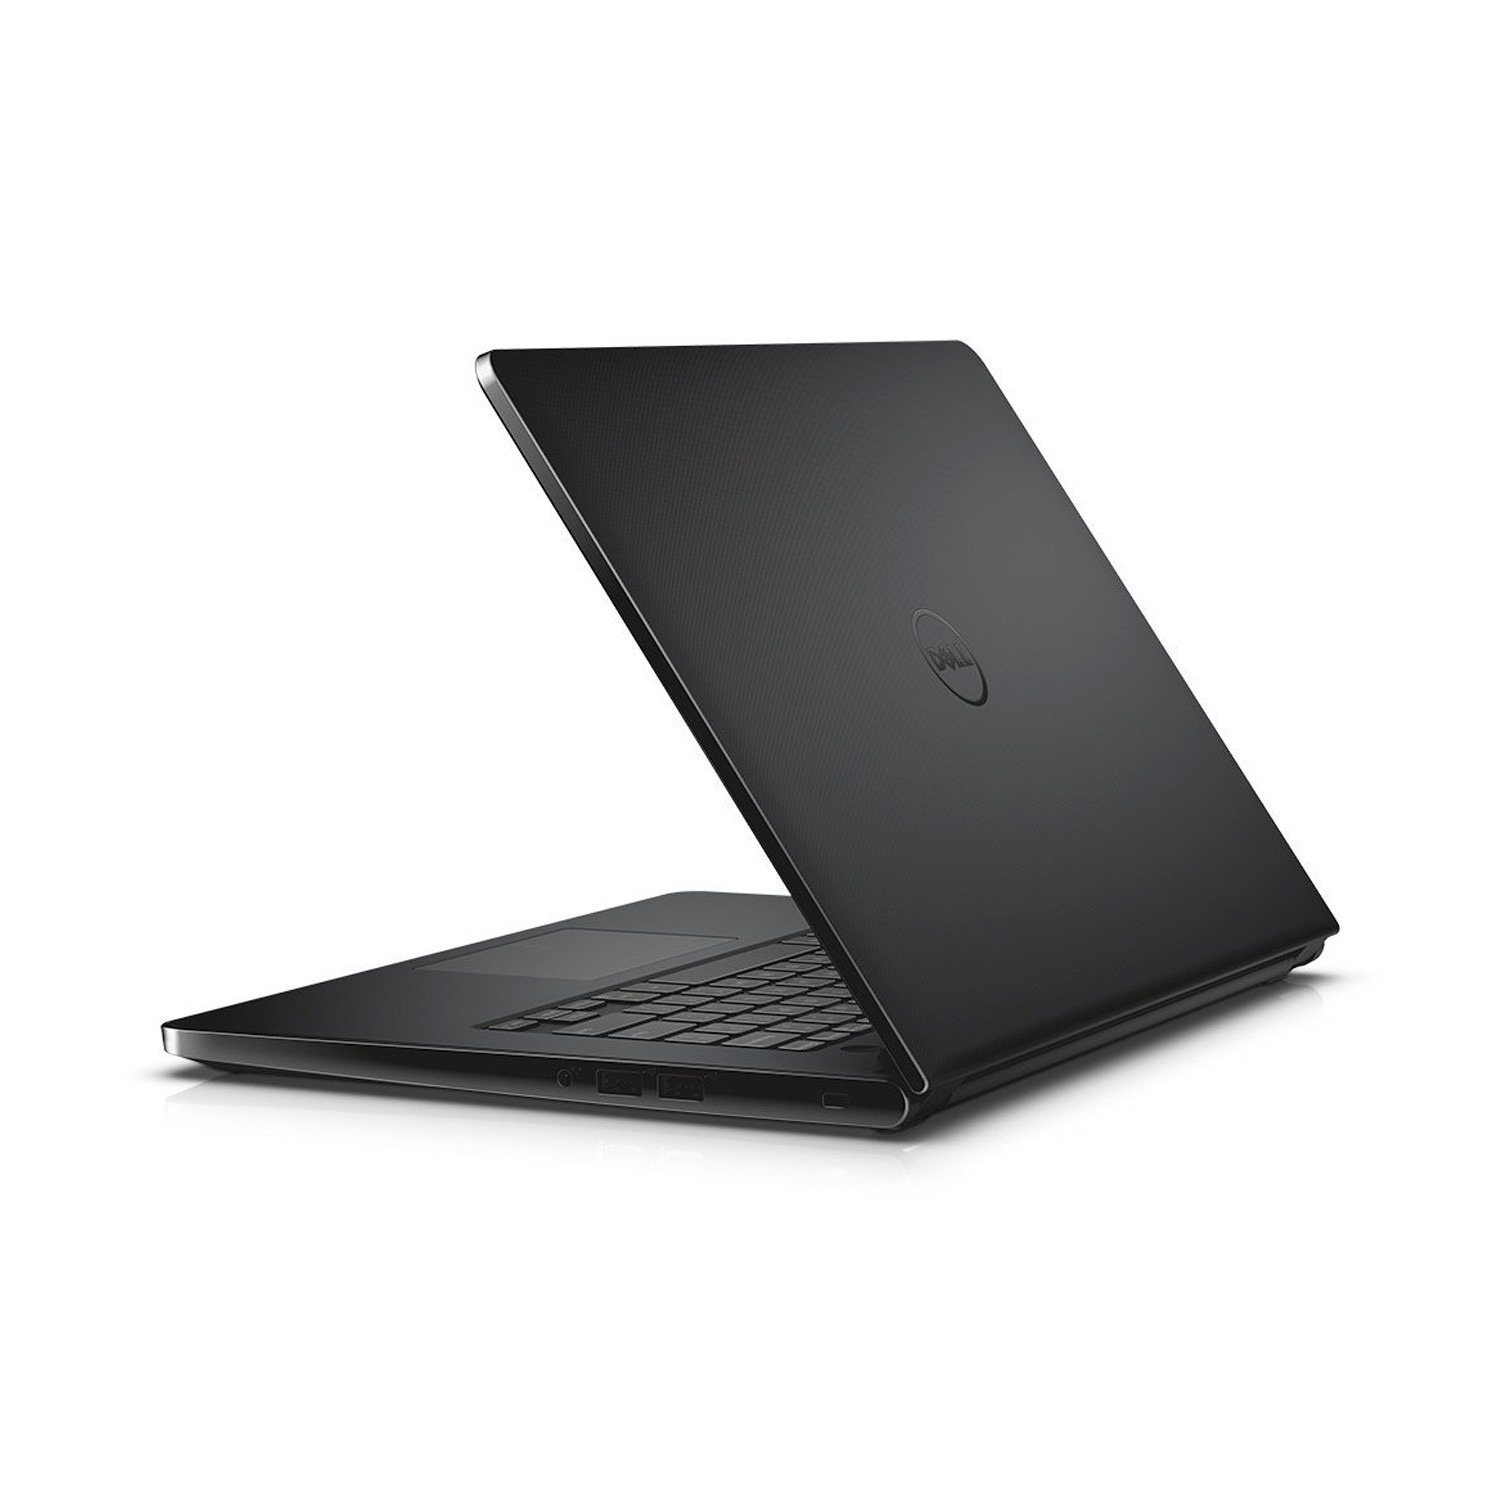 "Dell Inspiron 15-5566 Intel Core i5-7200U X2 2.5GHz 8GB 1TB 15.6"" Win10,Black (Scratch And Dent Refurbished)"